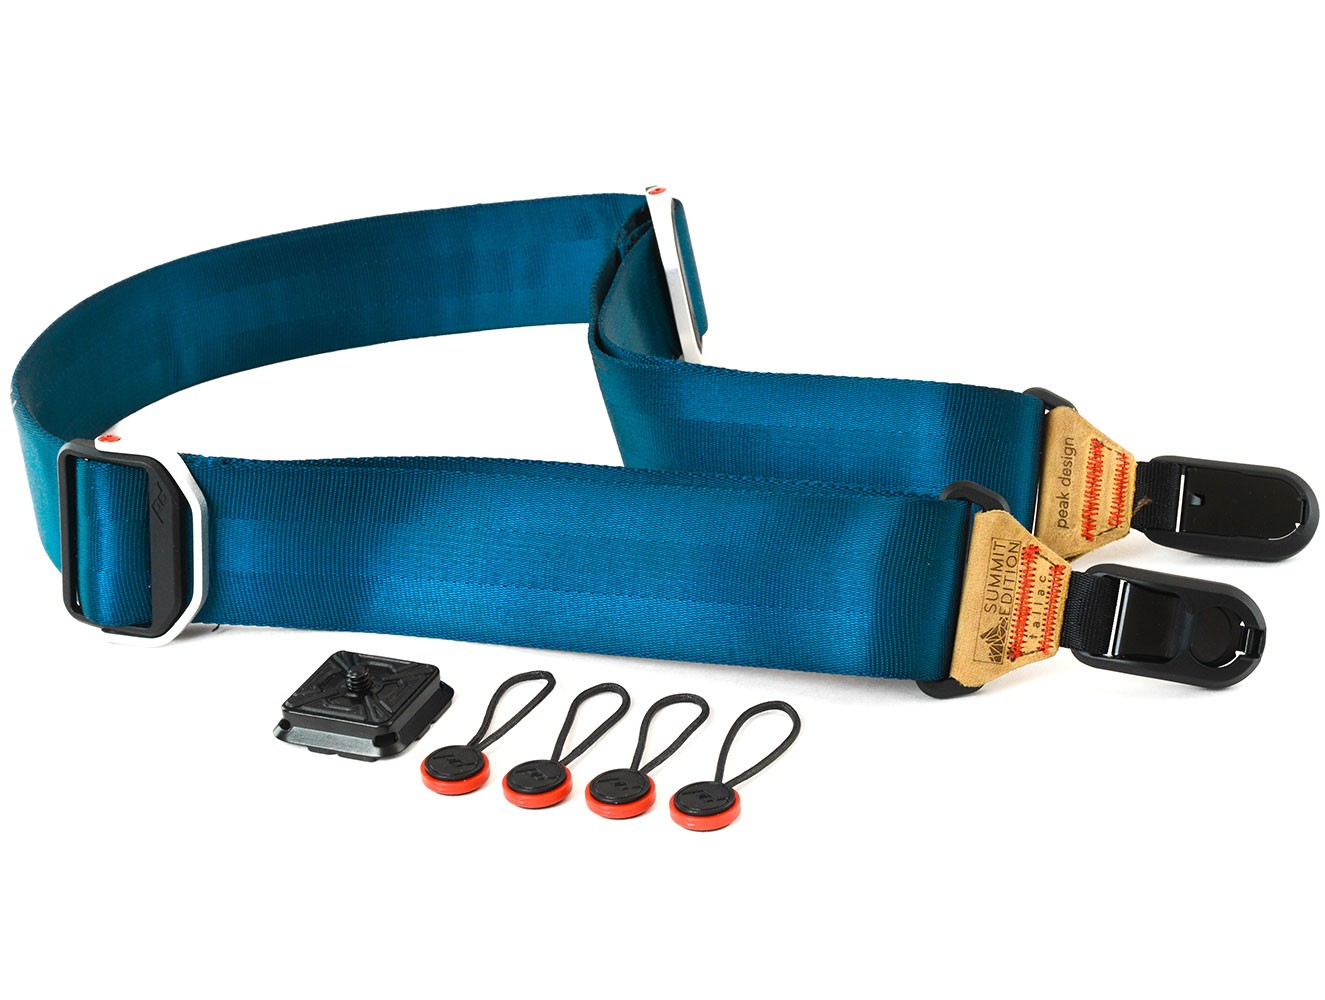 jeffontheroad-gift-ideas-photographers-youtubers-peak-design-slide-strap